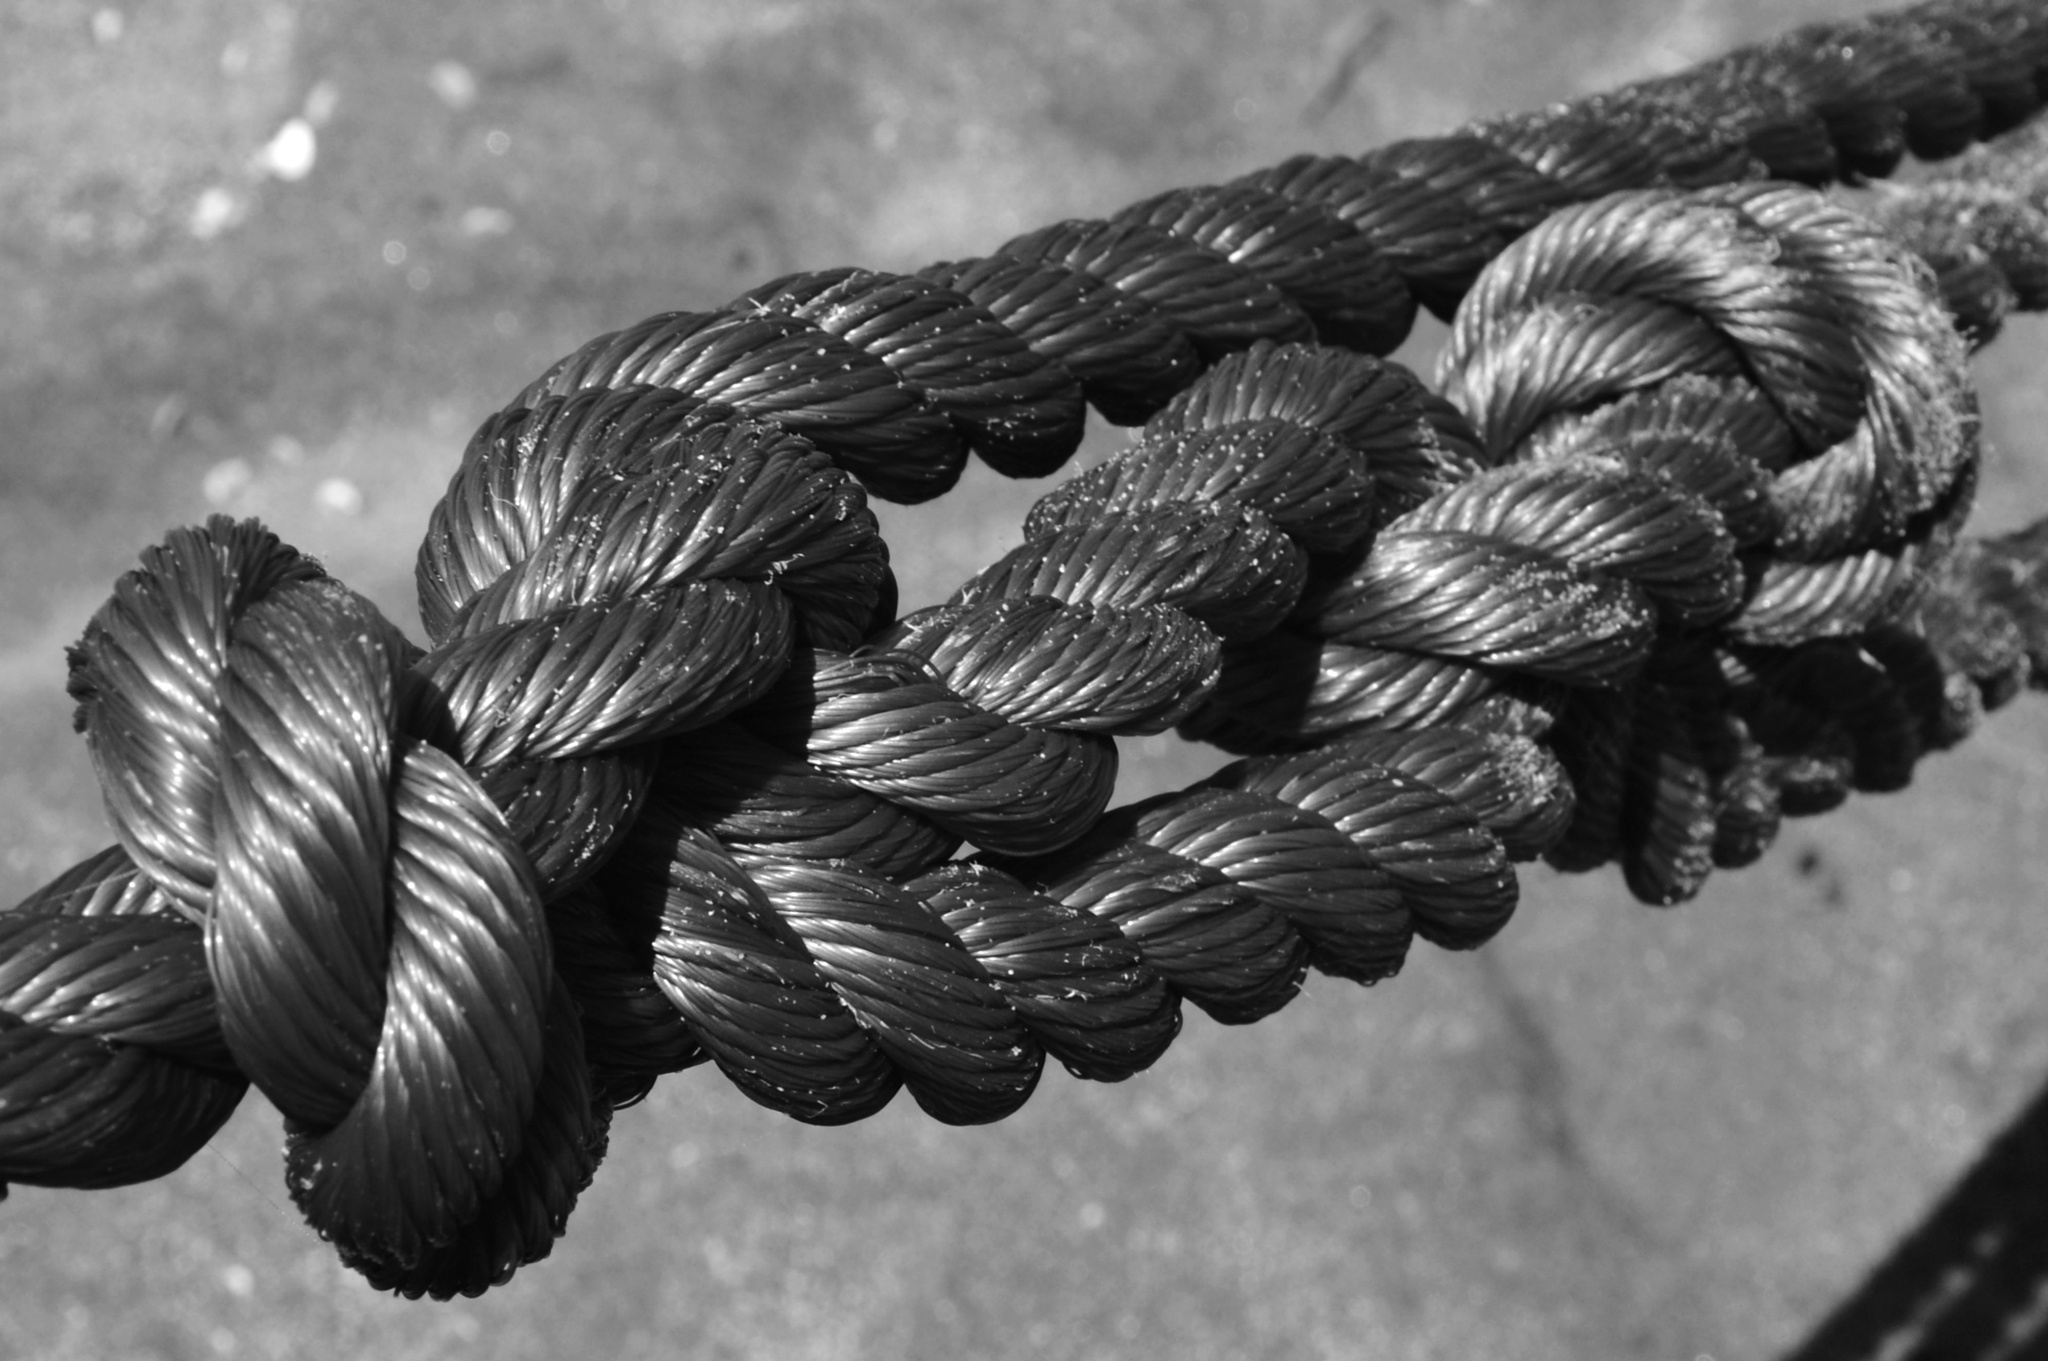 Knot by Ives Martinez